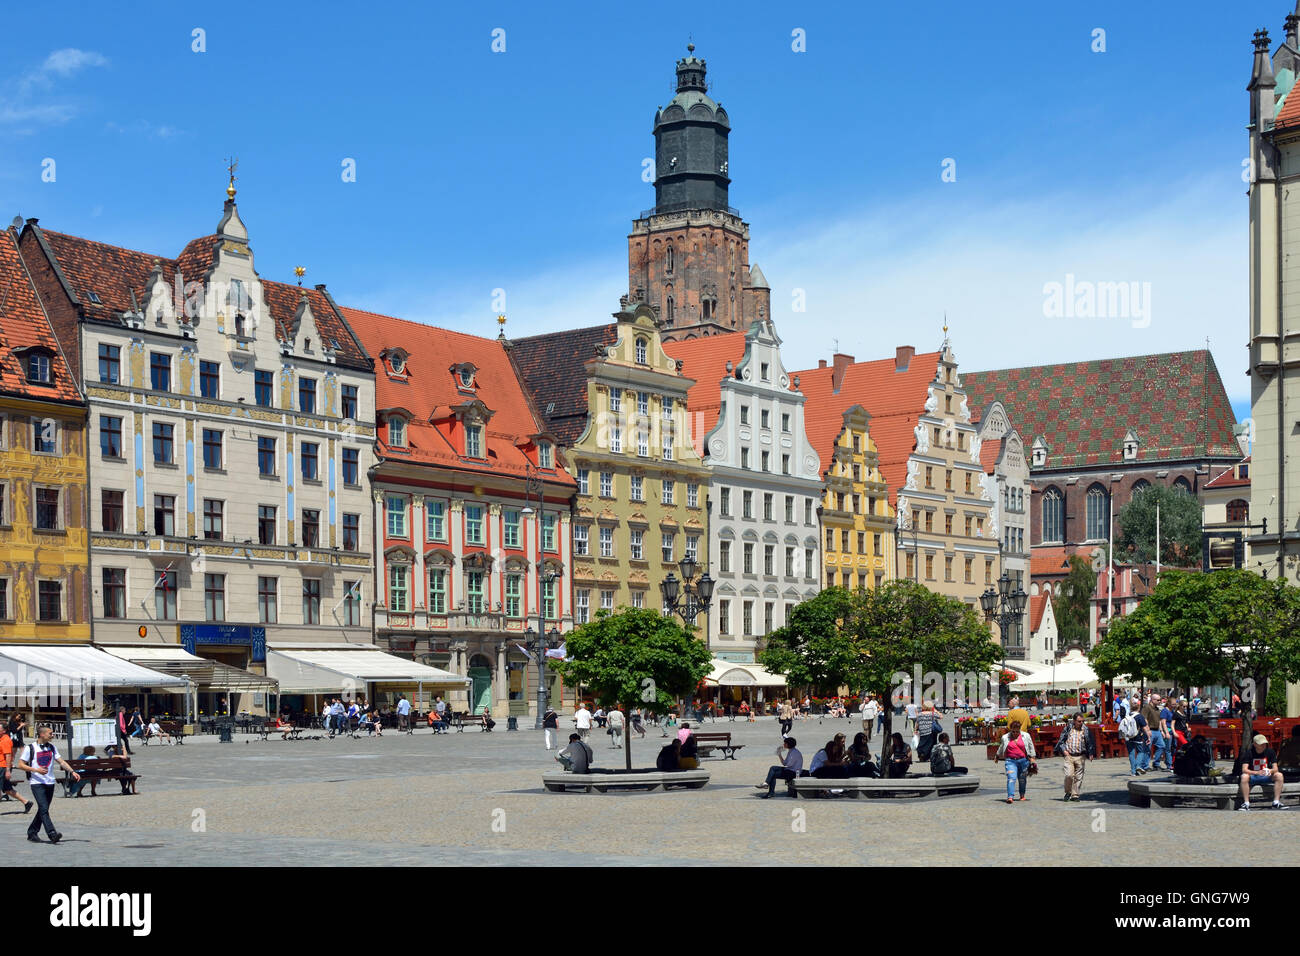 Pedestrian of the Market Square in the historical Old Town of Wroclaw with view of the St. Elizabeth's Church - Stock Photo